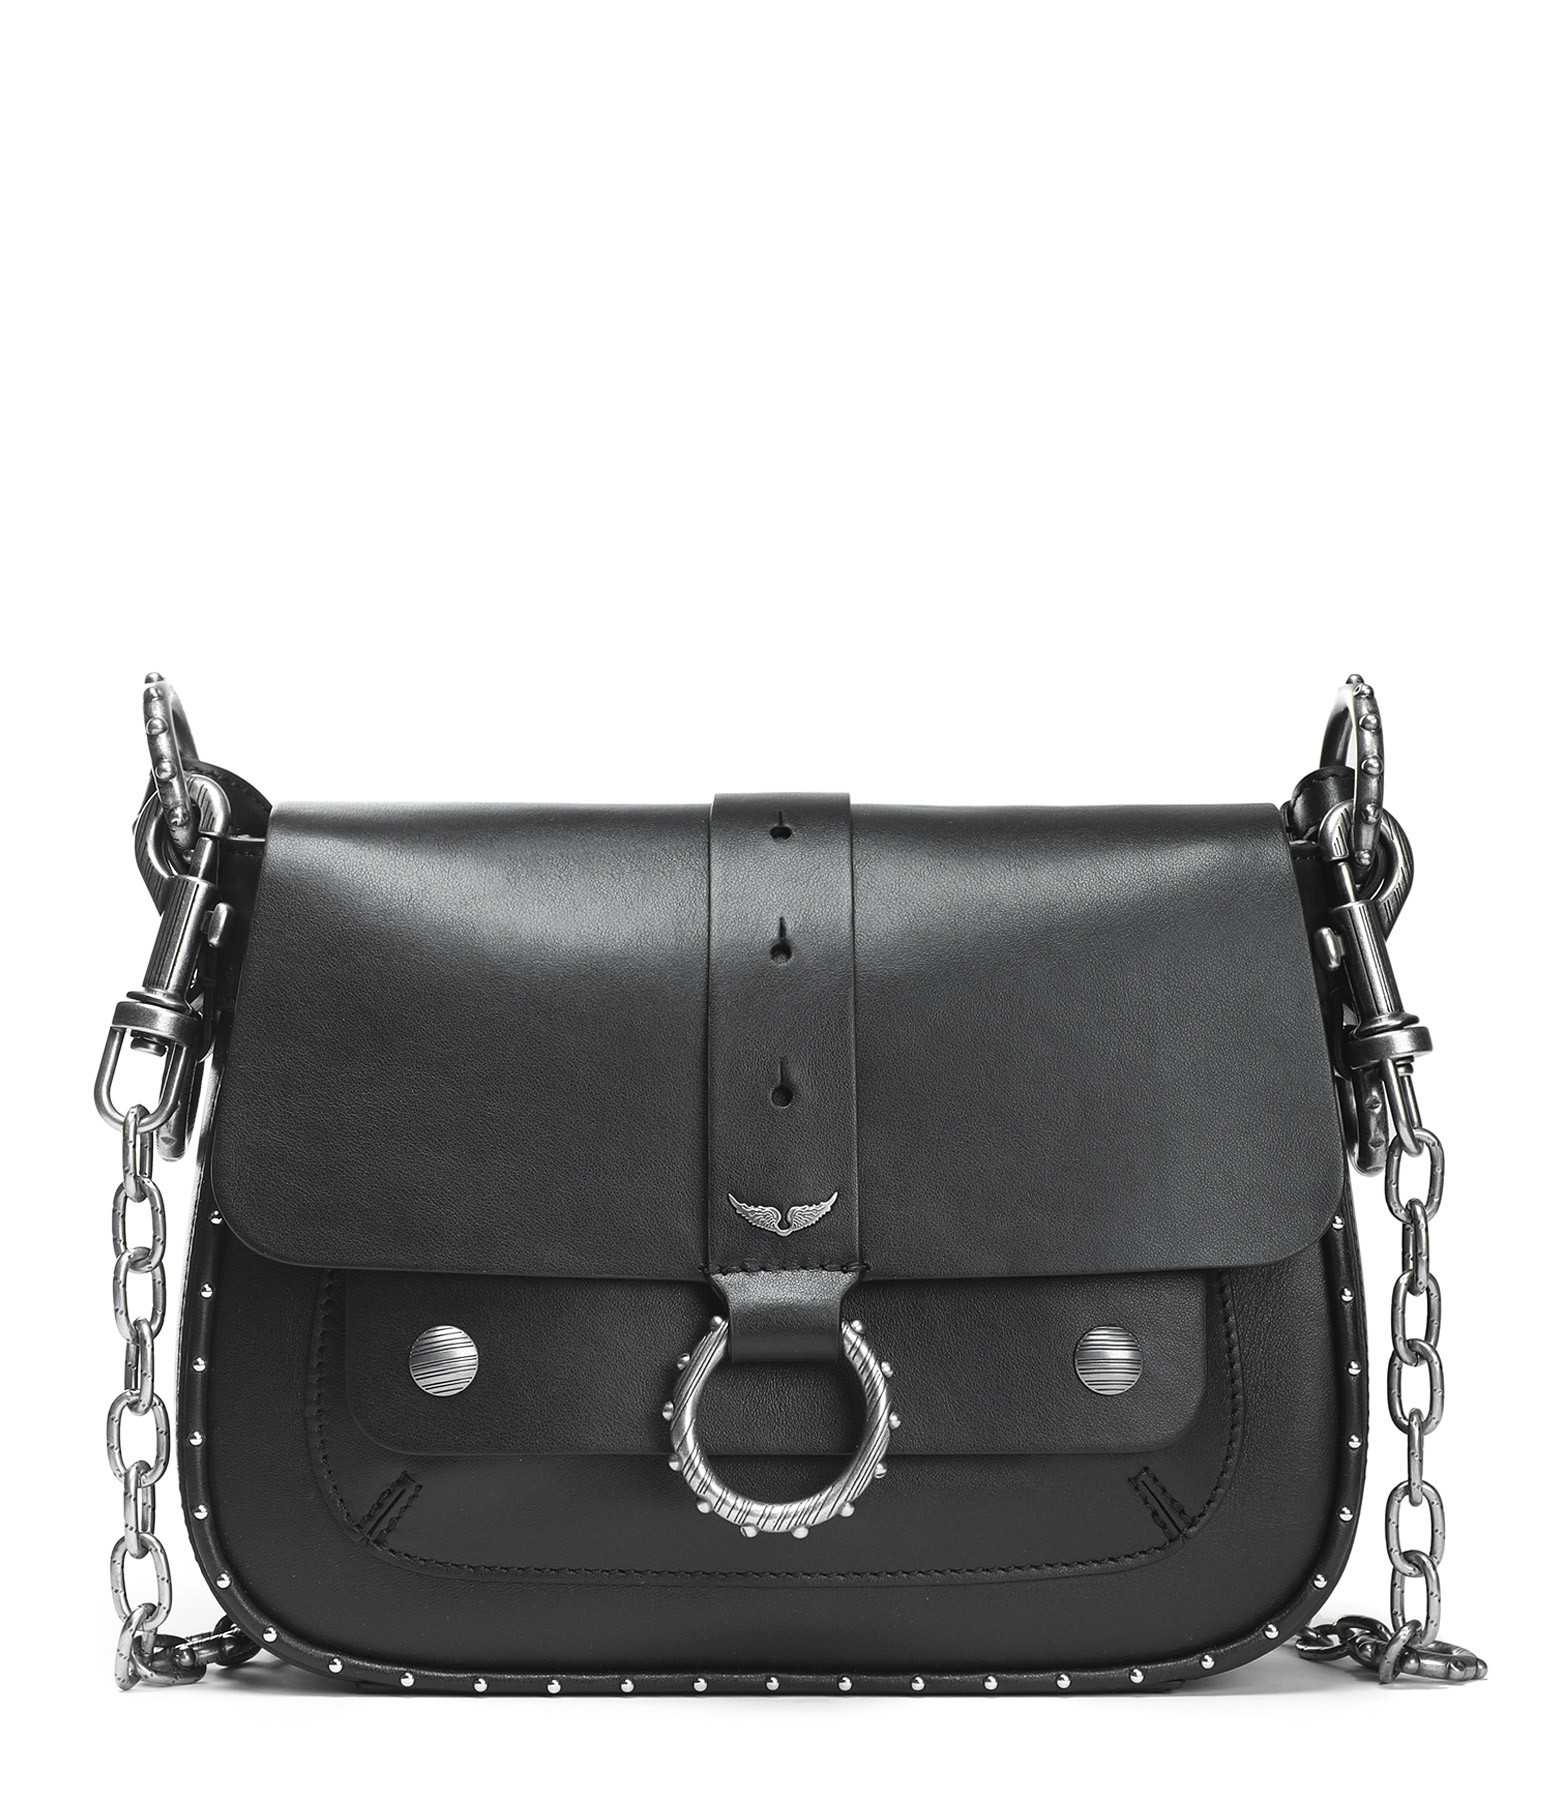 ZADIG & VOLTAIRE - Sac Smooth Cuir Noir, Collection Kate Moss